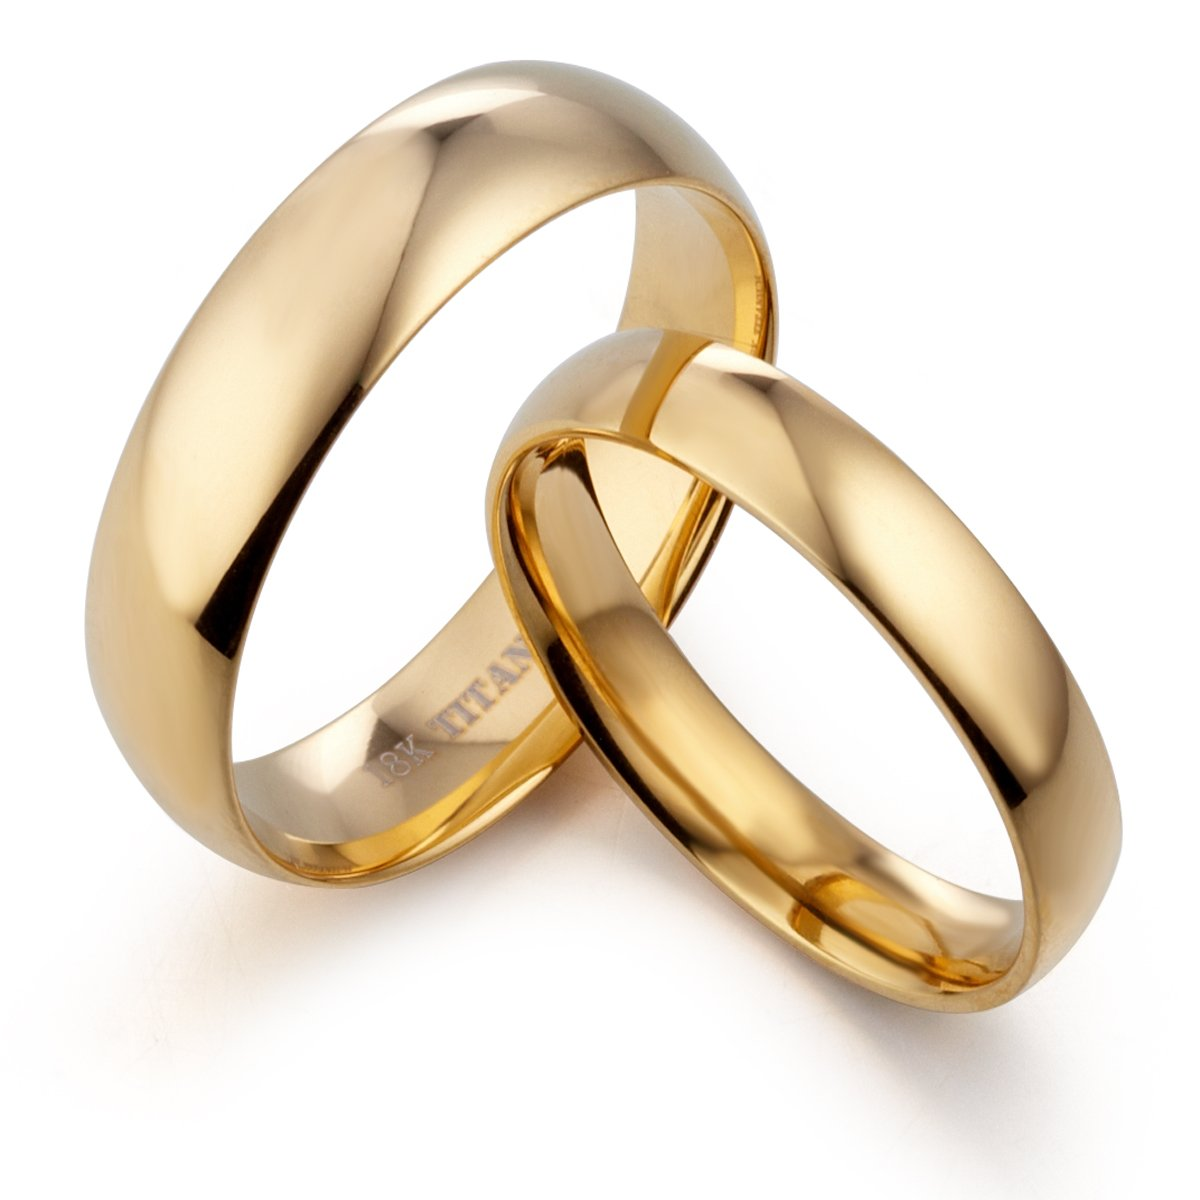 14 Women Ring Size Width 6mm /& 4mm Men Ring Size 5.5 Gemini His /& Her Dome Comfort Fit 18K Gold Filled Anniversary Wedding Titanium Rings Set